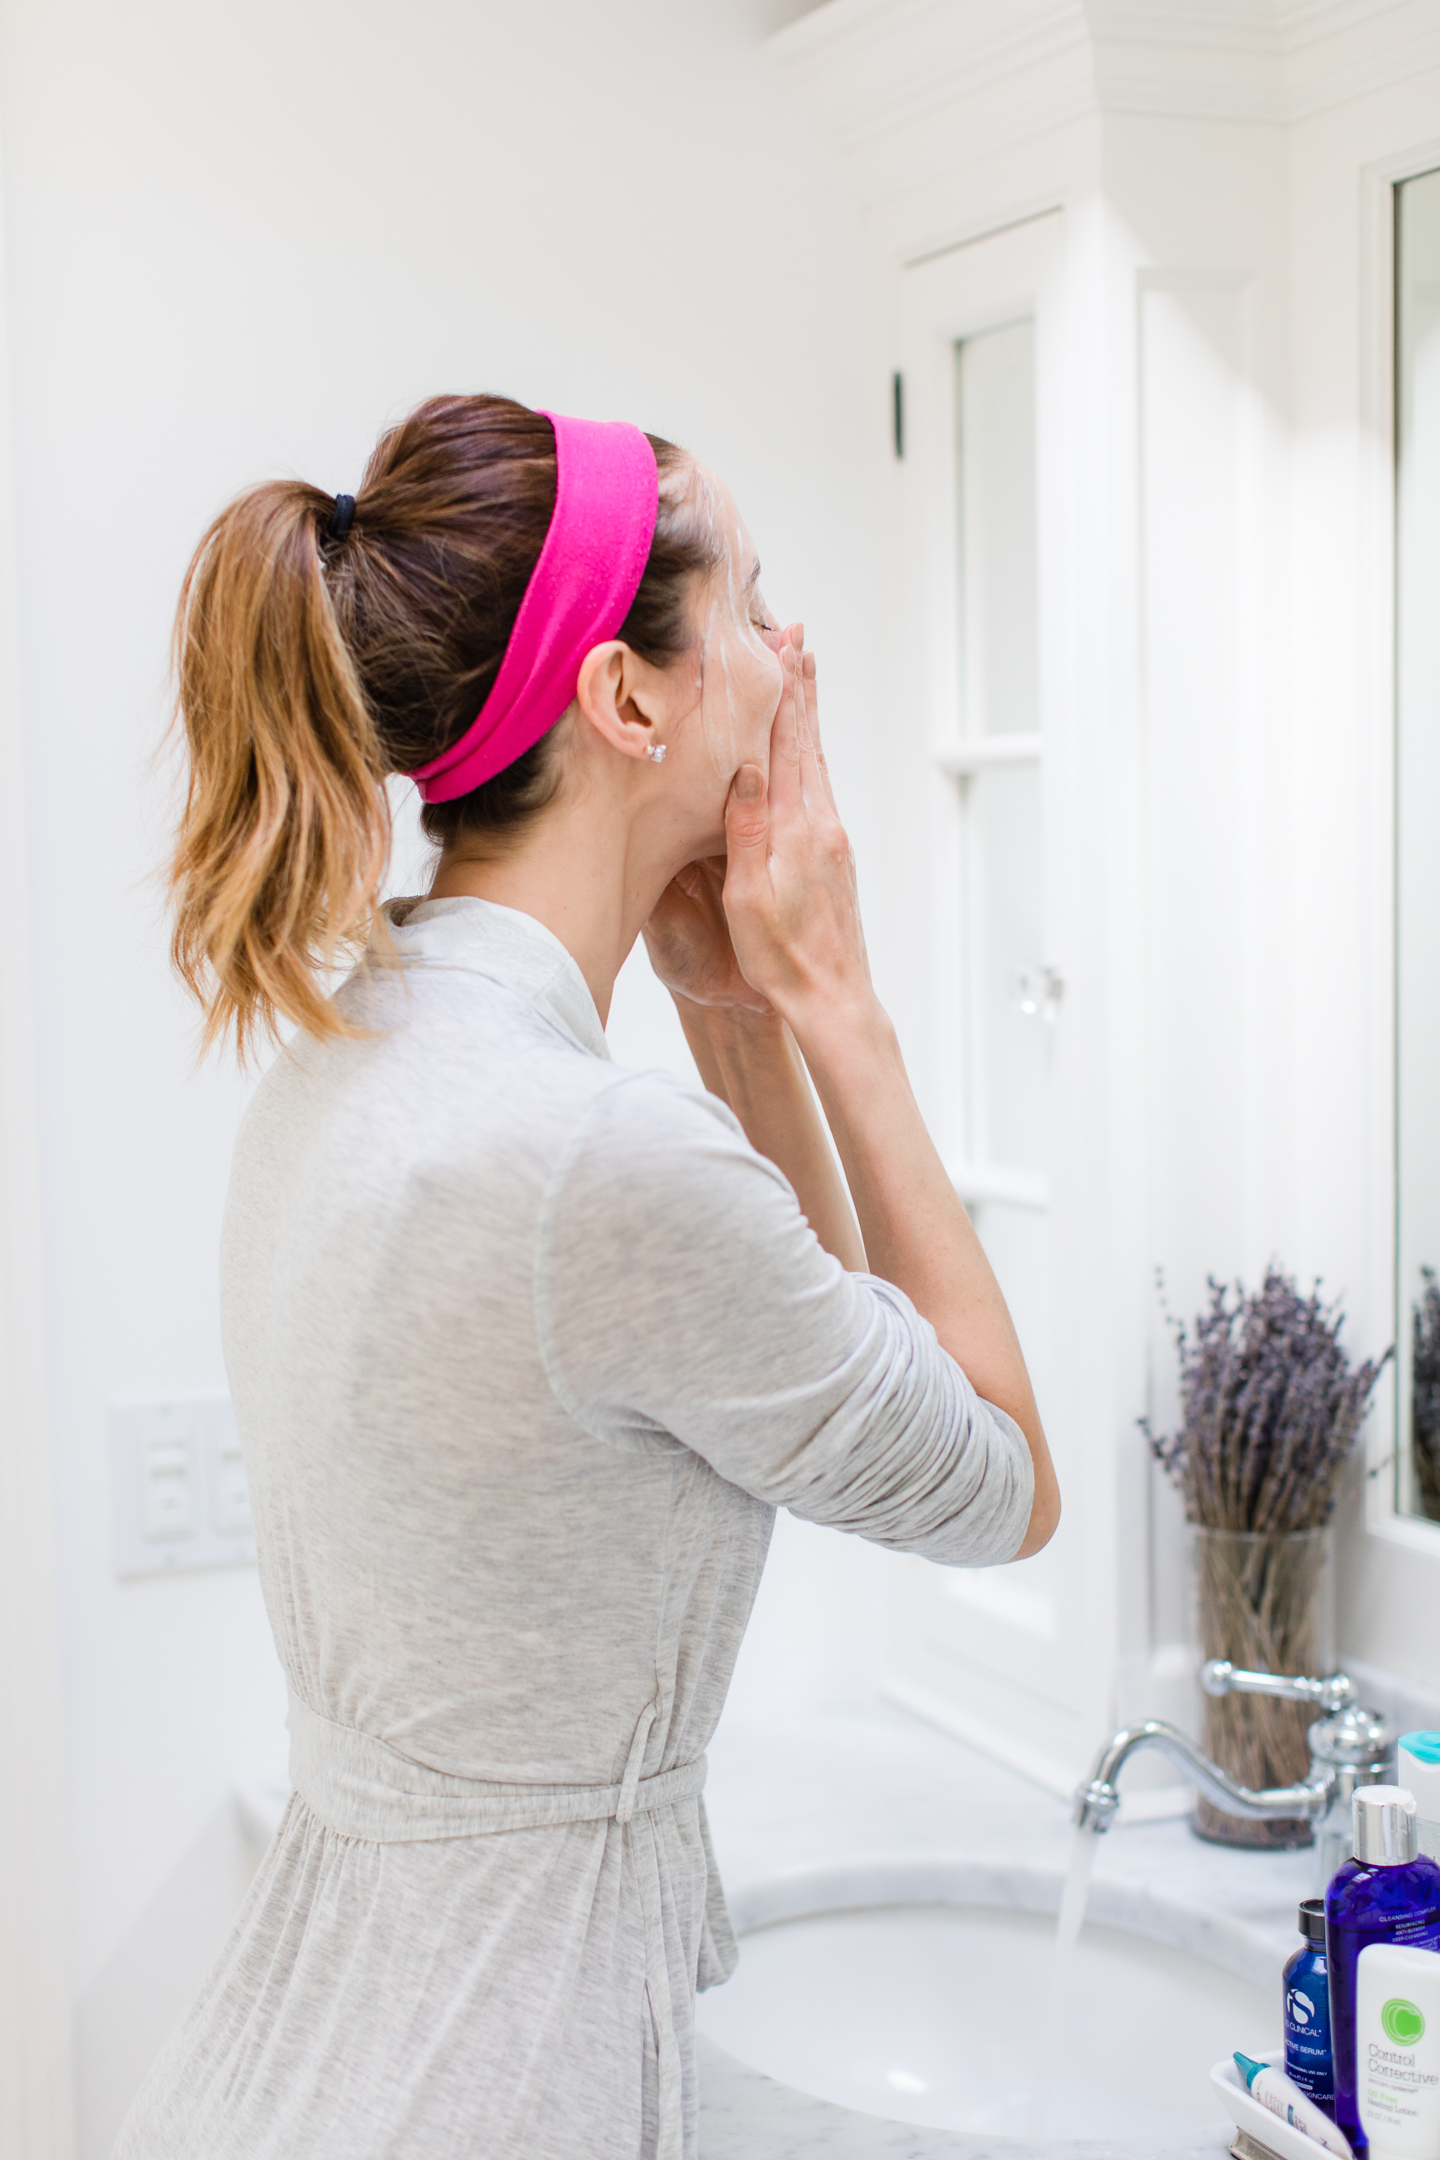 Eva Amurri Martino cleanses her face in the bathroom of her Connecticut home